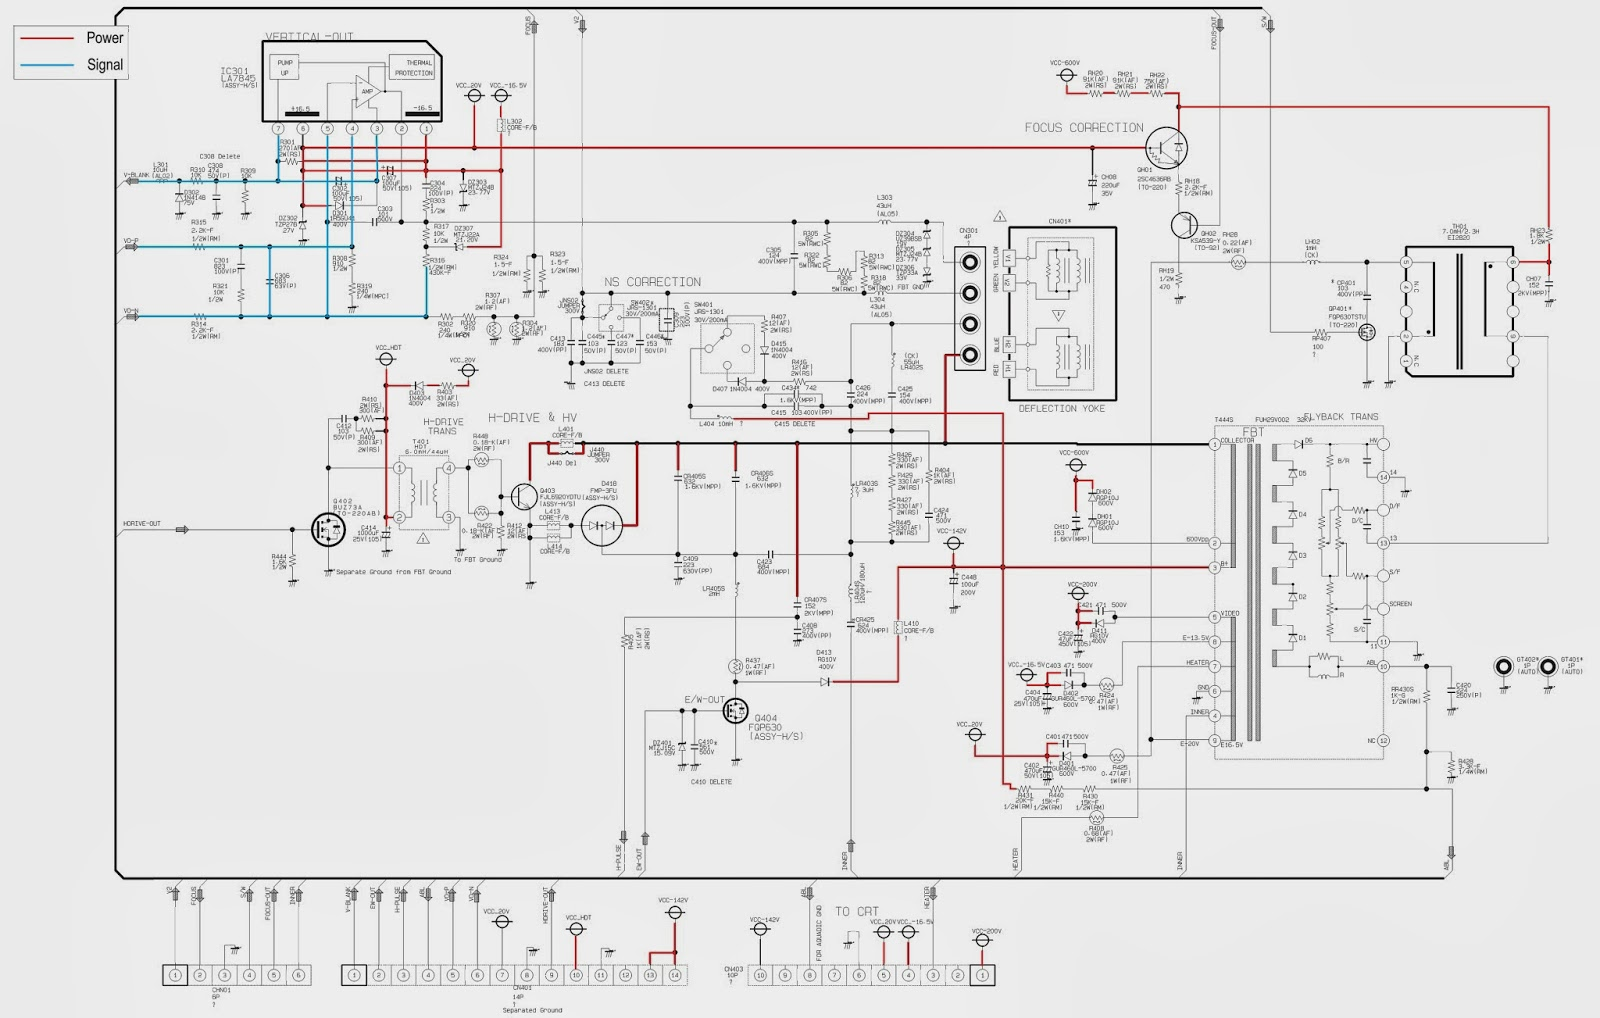 Cw29z306samsung Coreset Power in addition Android 20USB 20adapter also Famous Heat Pump Wiring Diagram Schematic Gallery Electrical Endear as well Case Excavator Parts further Inverter Service Manual Pdf Wiring Diagrams. on samsung schematic diagrams